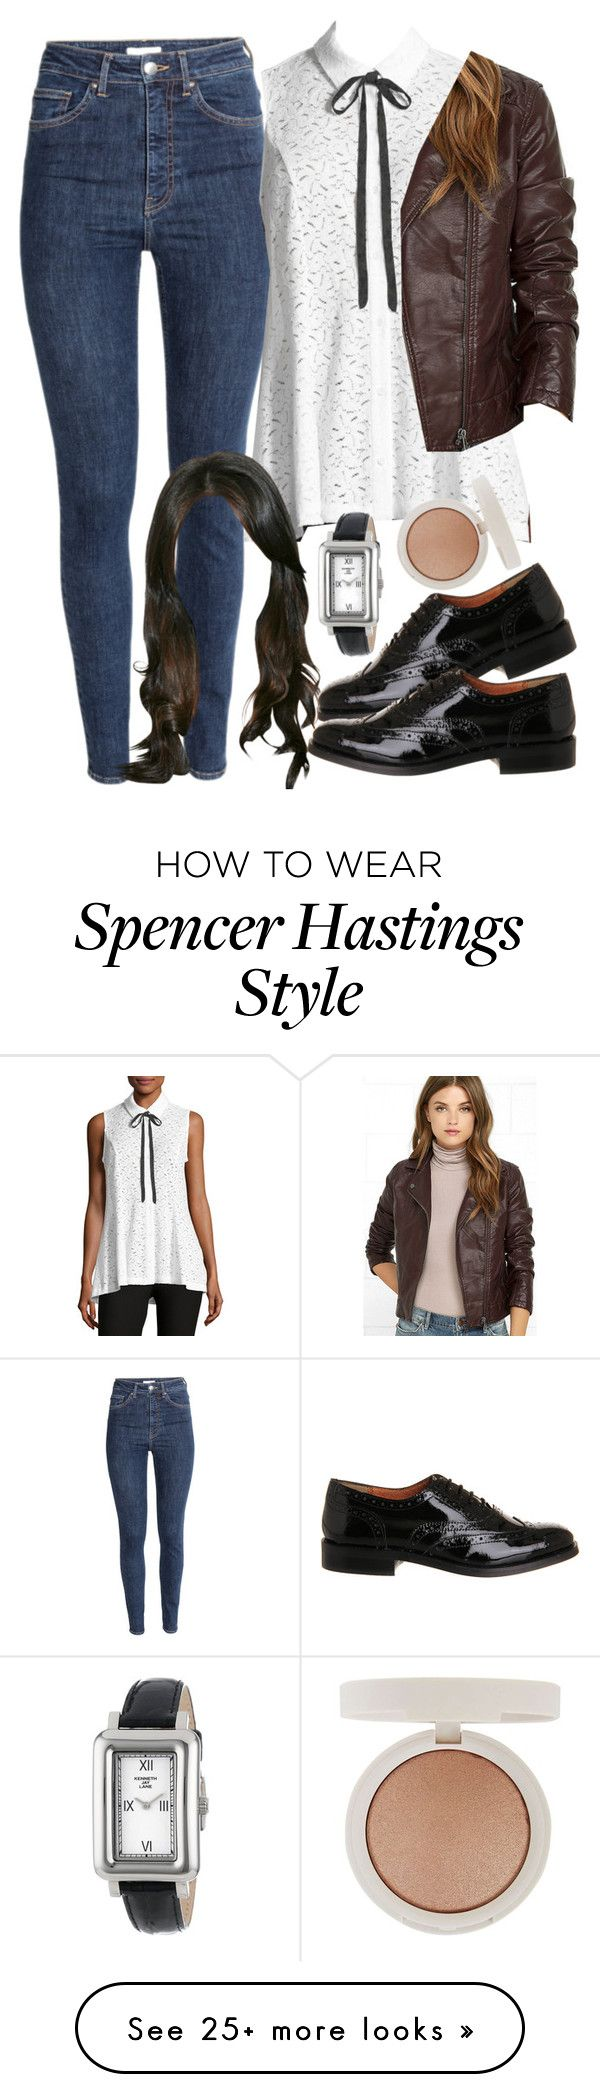 """""""Spencer Hastings inspired outfit with a leather jacket"""" by liarsstyle on Polyvore featuring 5twelve, BB Dakota, Topshop, Office, Kenneth Jay Lane, school, Work, college and WF"""